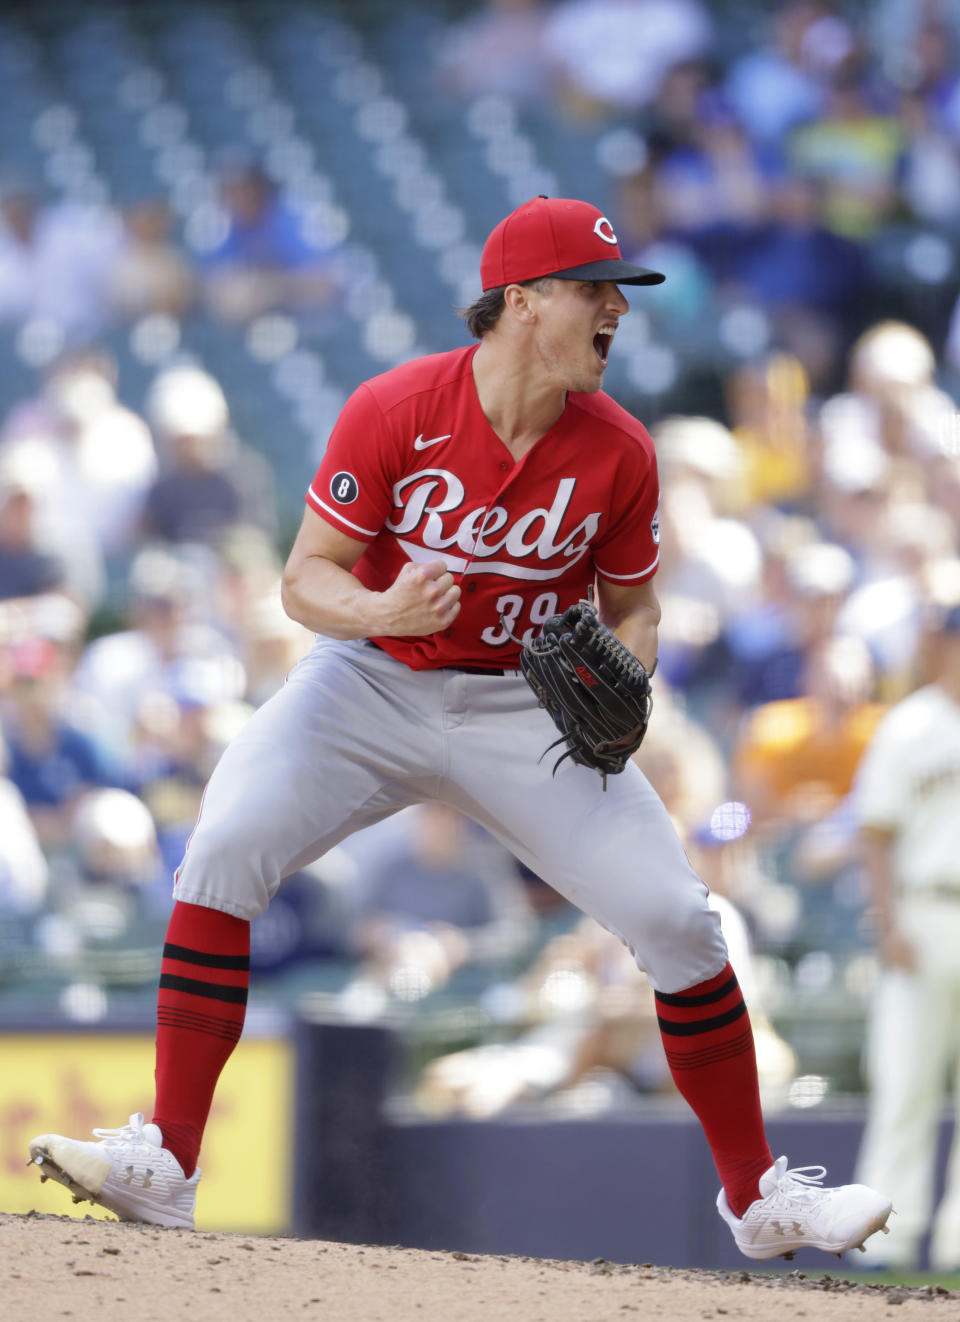 Cincinnati Reds pitcher Lucas Sims reacts after striking out Milwaukee Brewers Jackie Bradley Jr., to end the baseball game against the Milwaukee Brewers Wednesday, June 16, 2021, in Milwaukee. (AP Photo/Jeffrey Phelps)